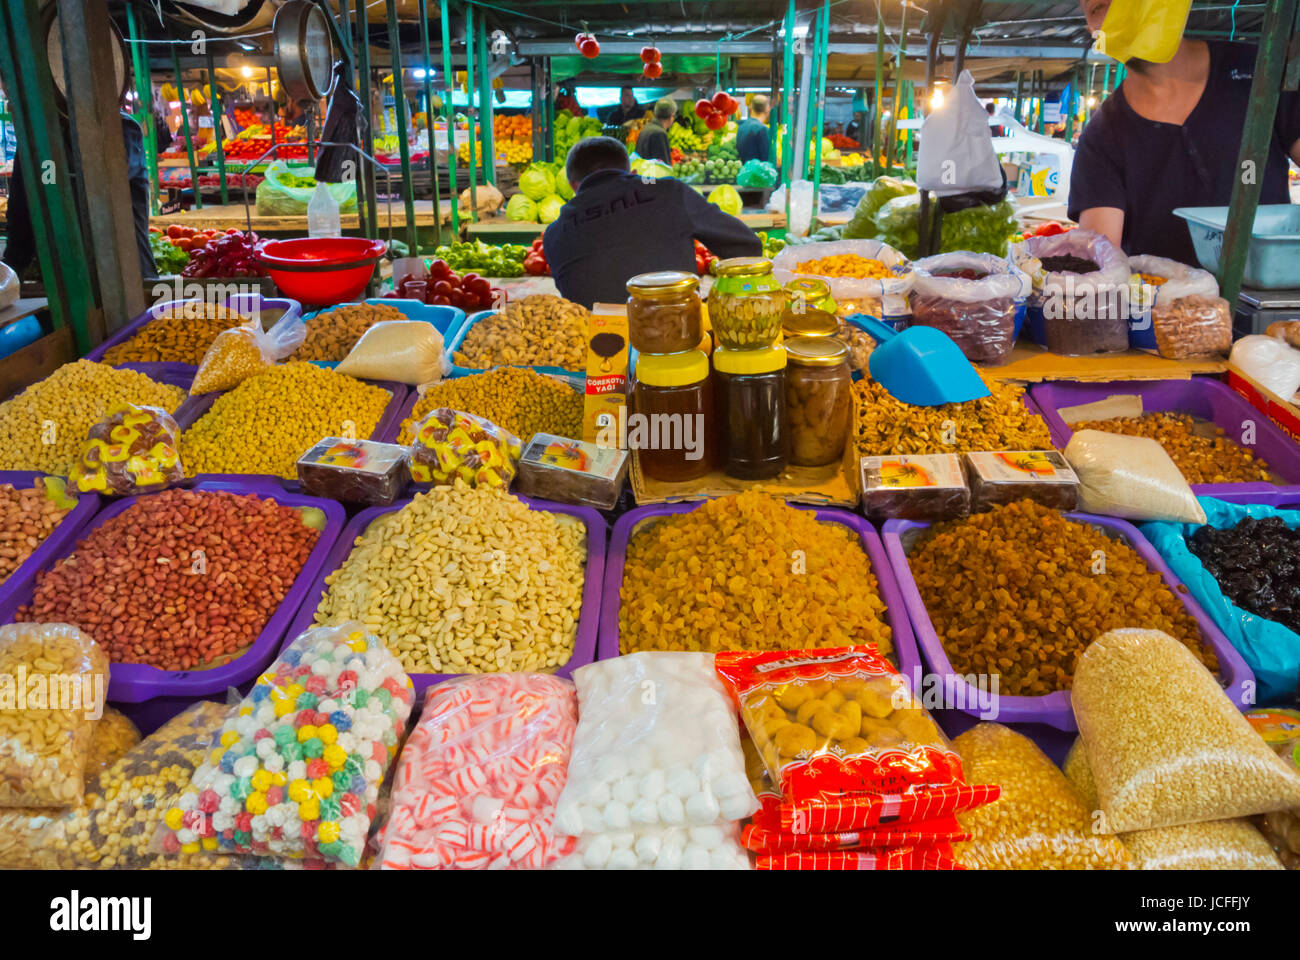 Nuts and dried fruit, Bit Pazar, covered market, Skopje, Macedonia - Stock Image